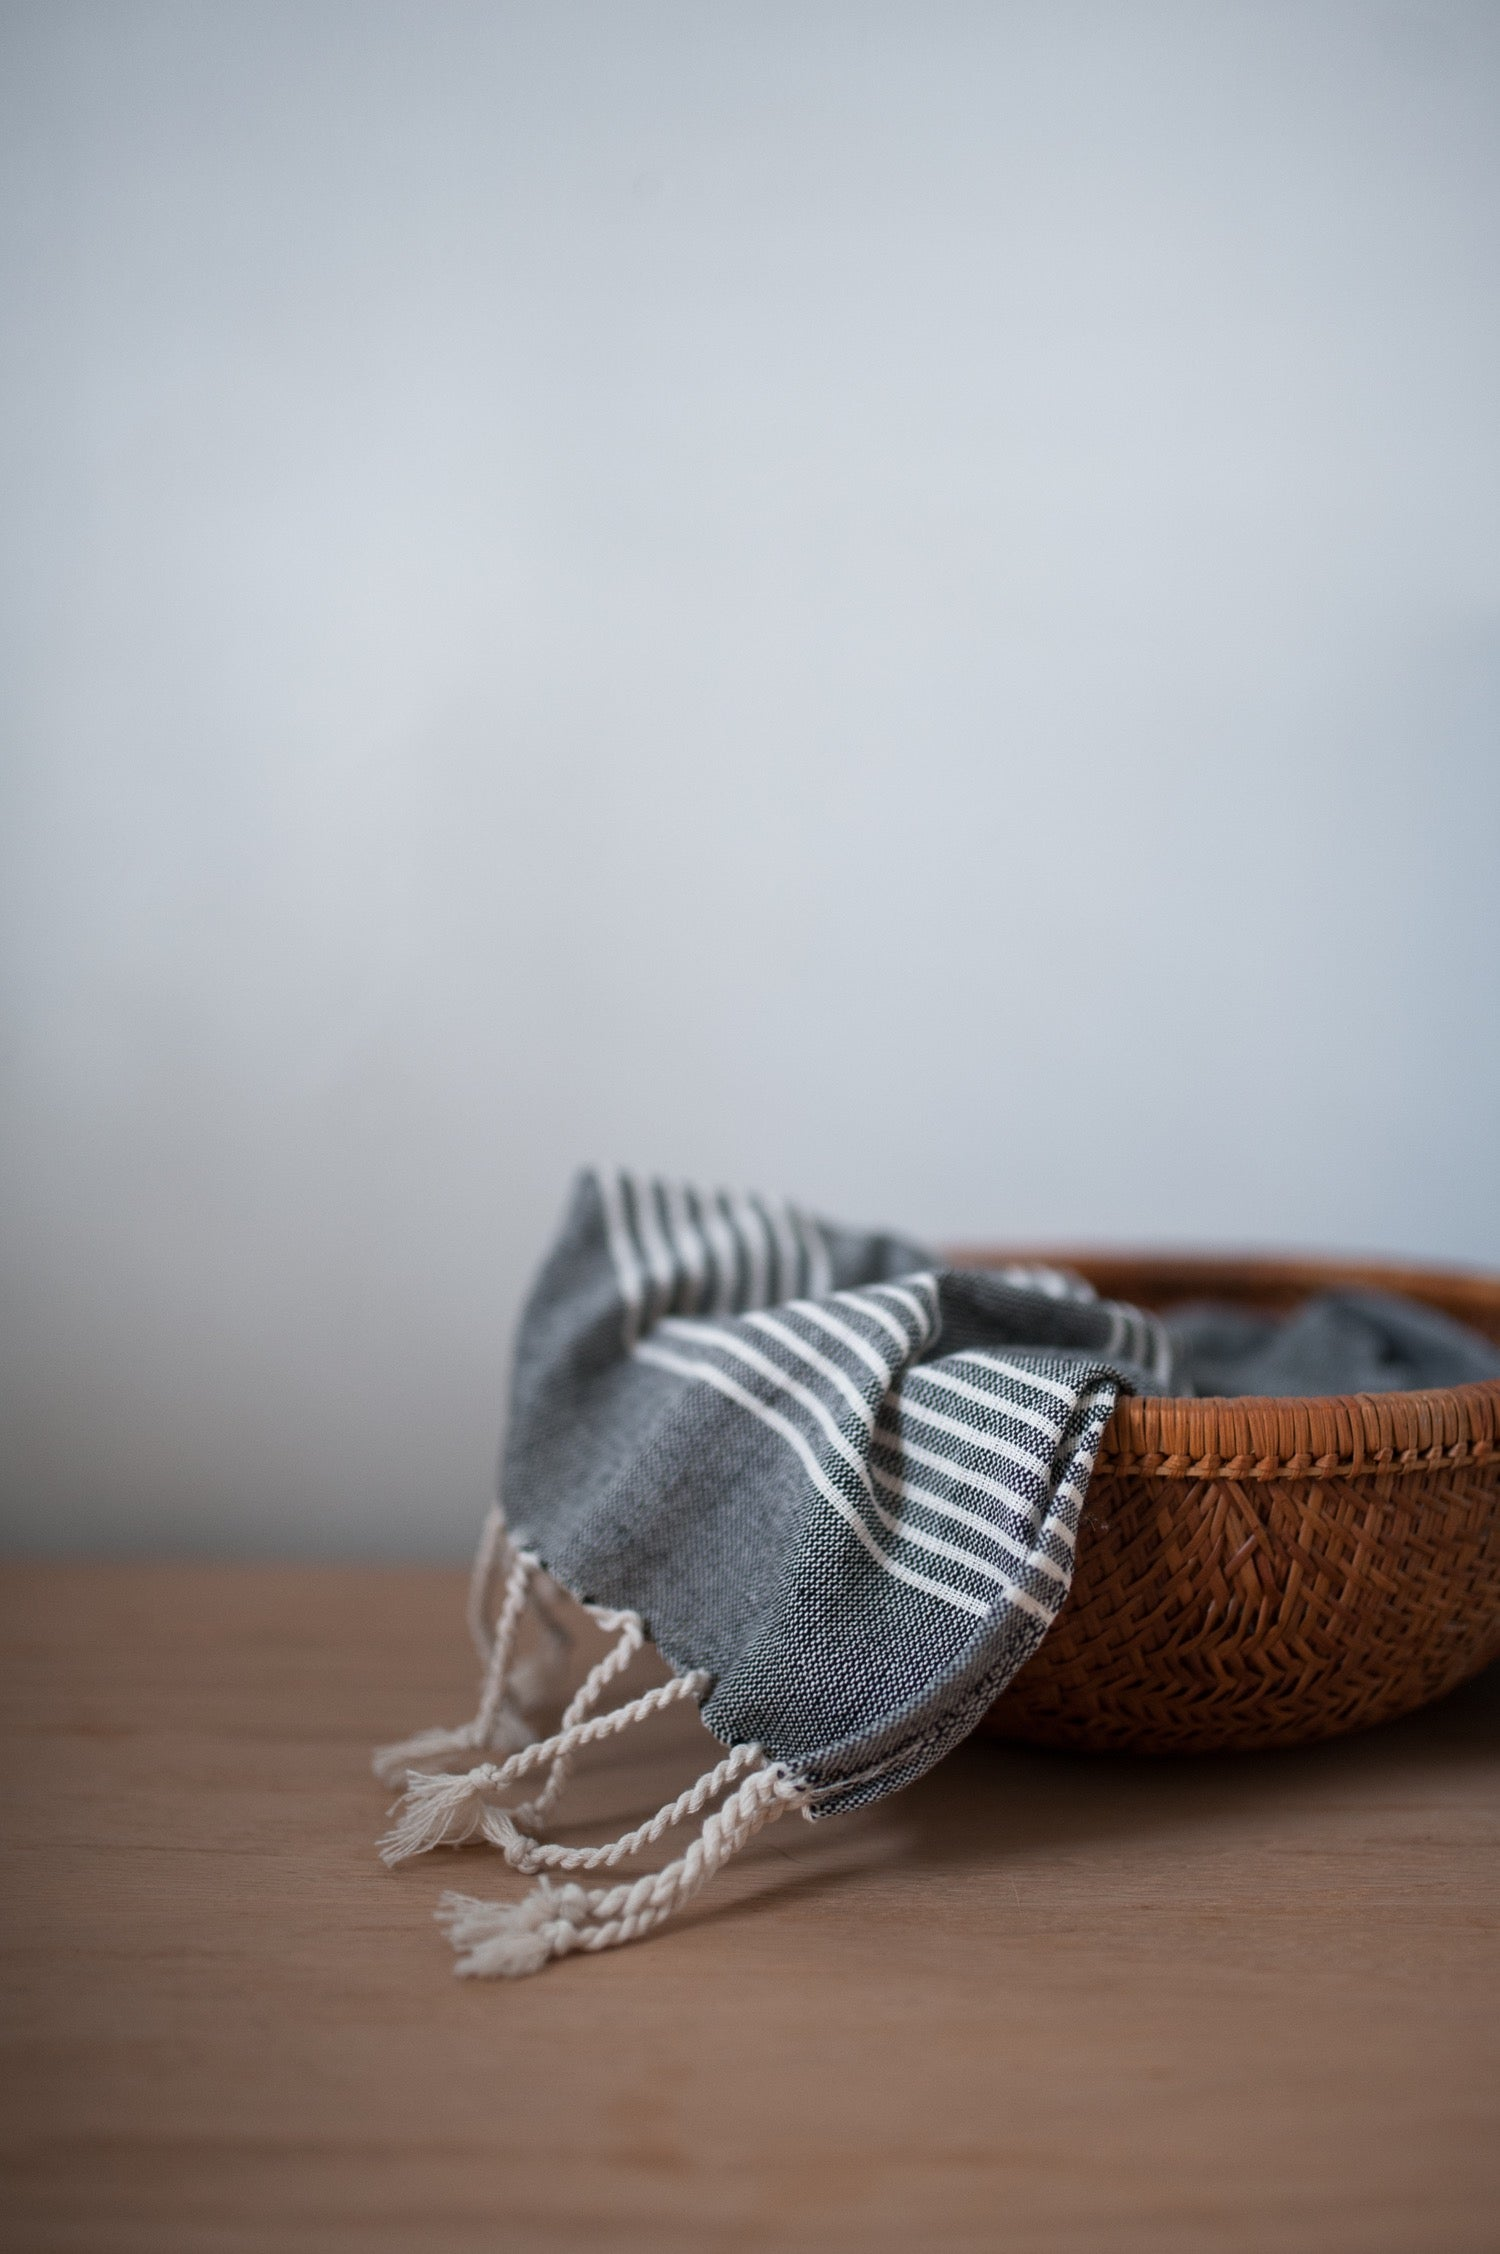 Turkish hand towel in charcoal and a woven basket.